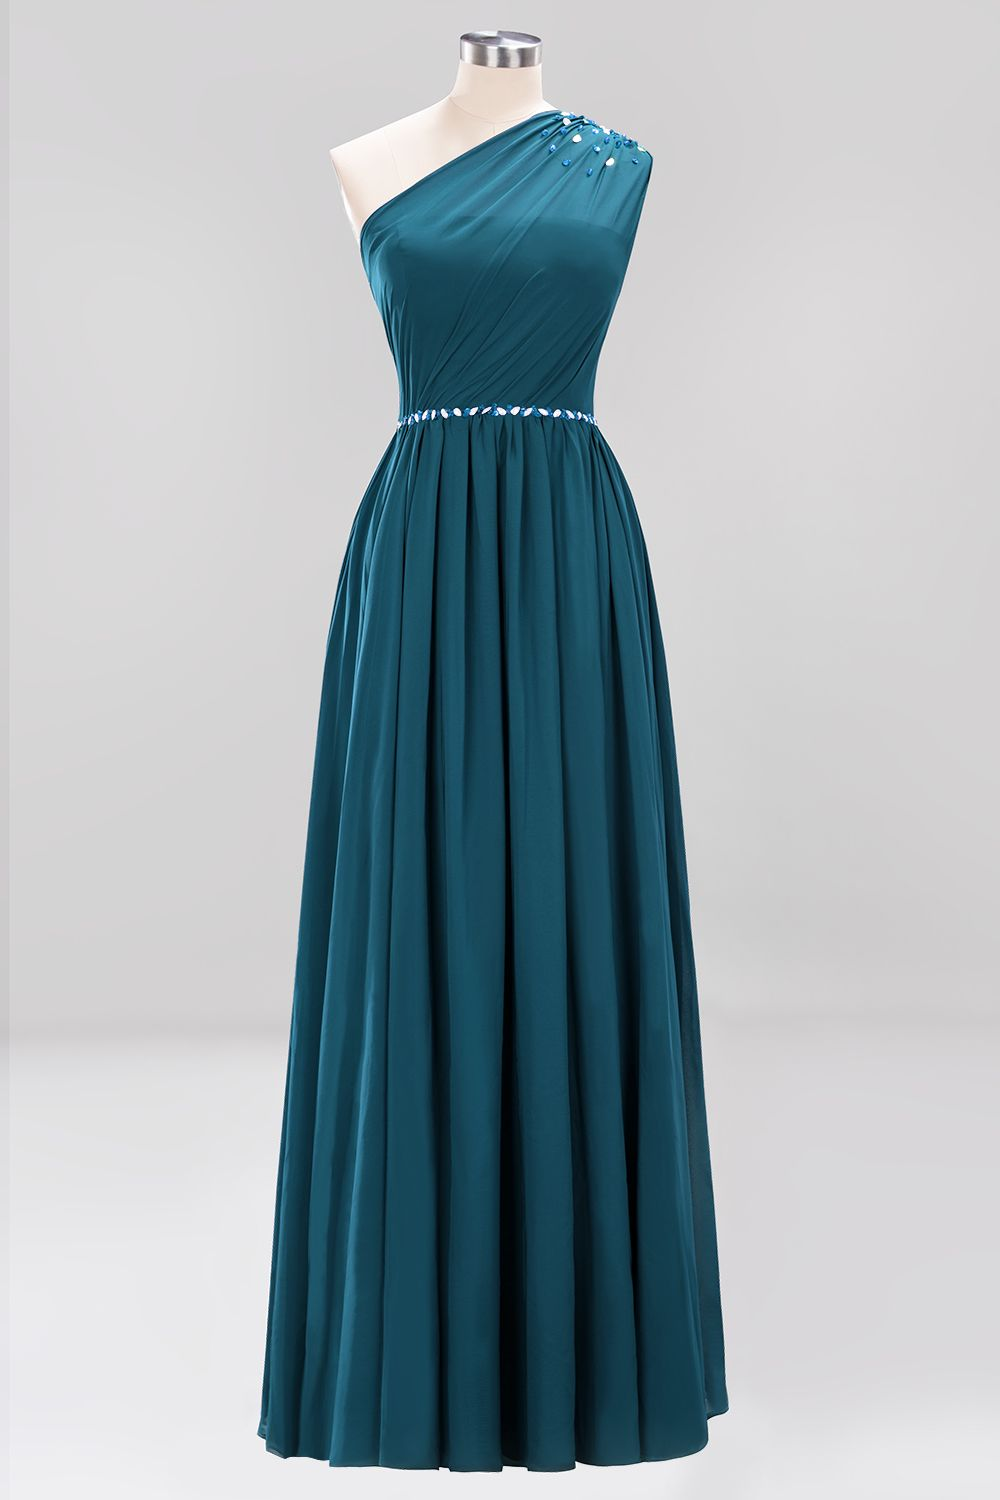 BMbridal Modest One-shoulder Royal Blue Affordable Bridesmaid Dress with Beadings